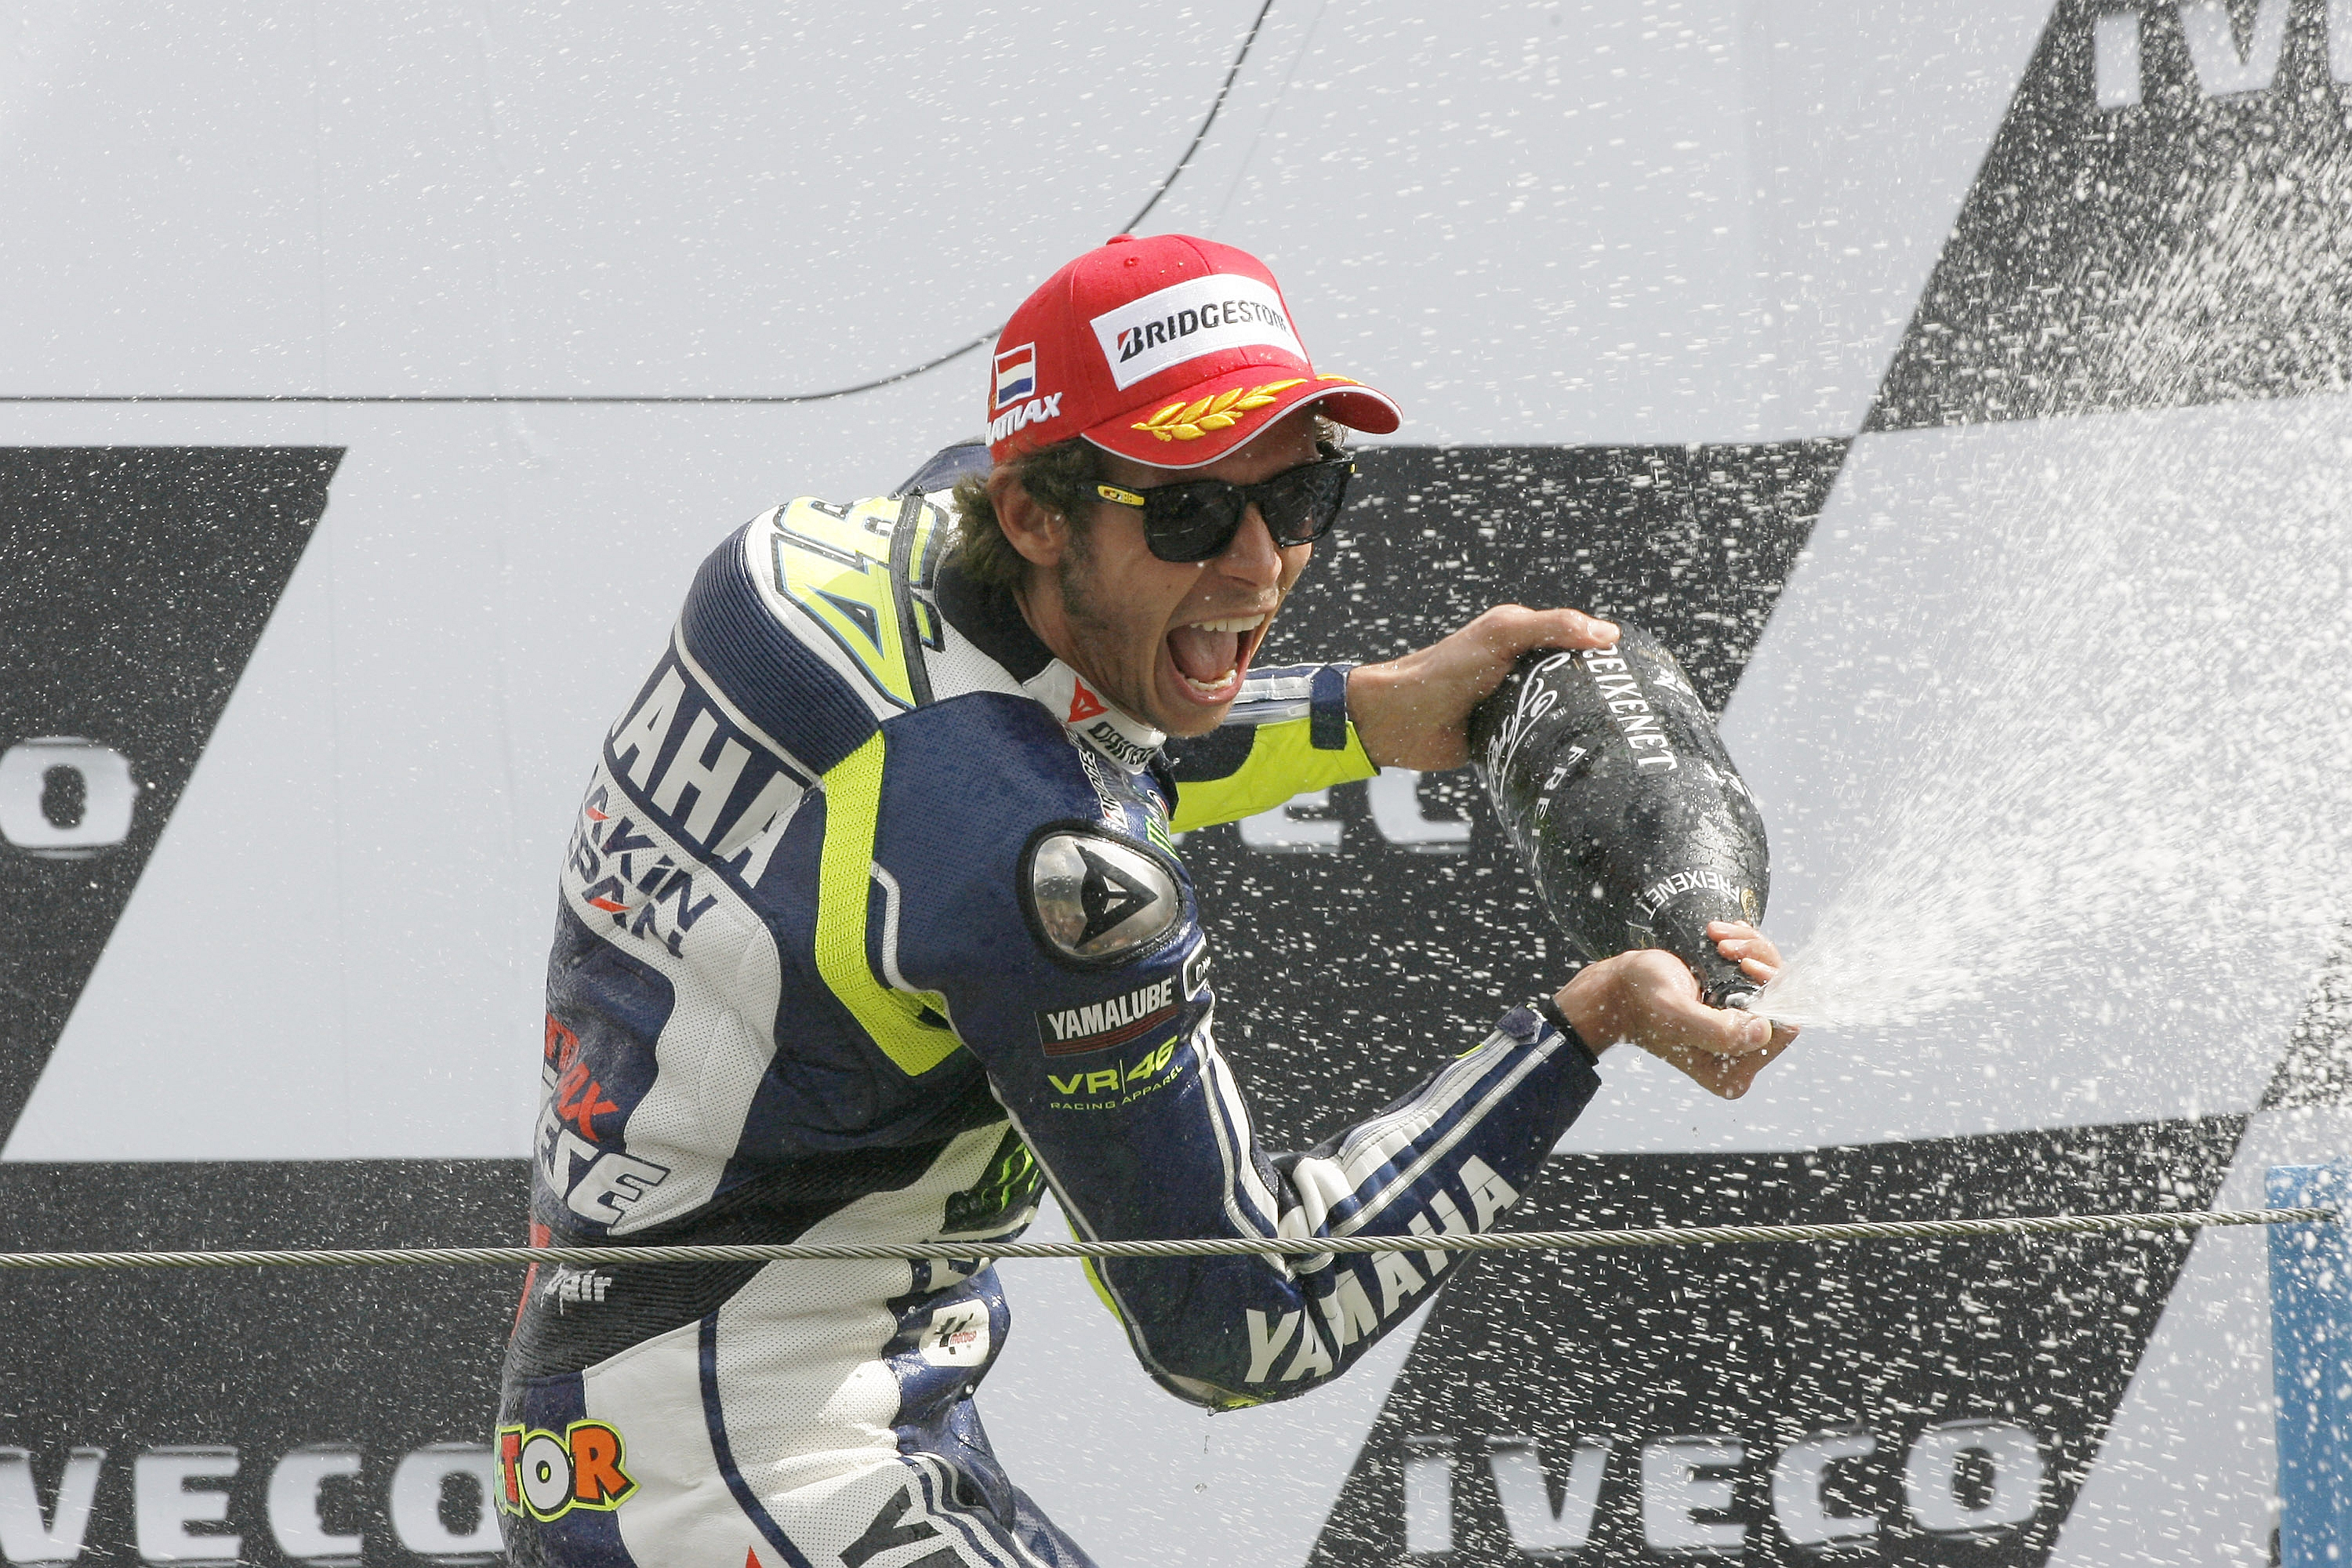 Rampant Rossi records first win of the season at Assen